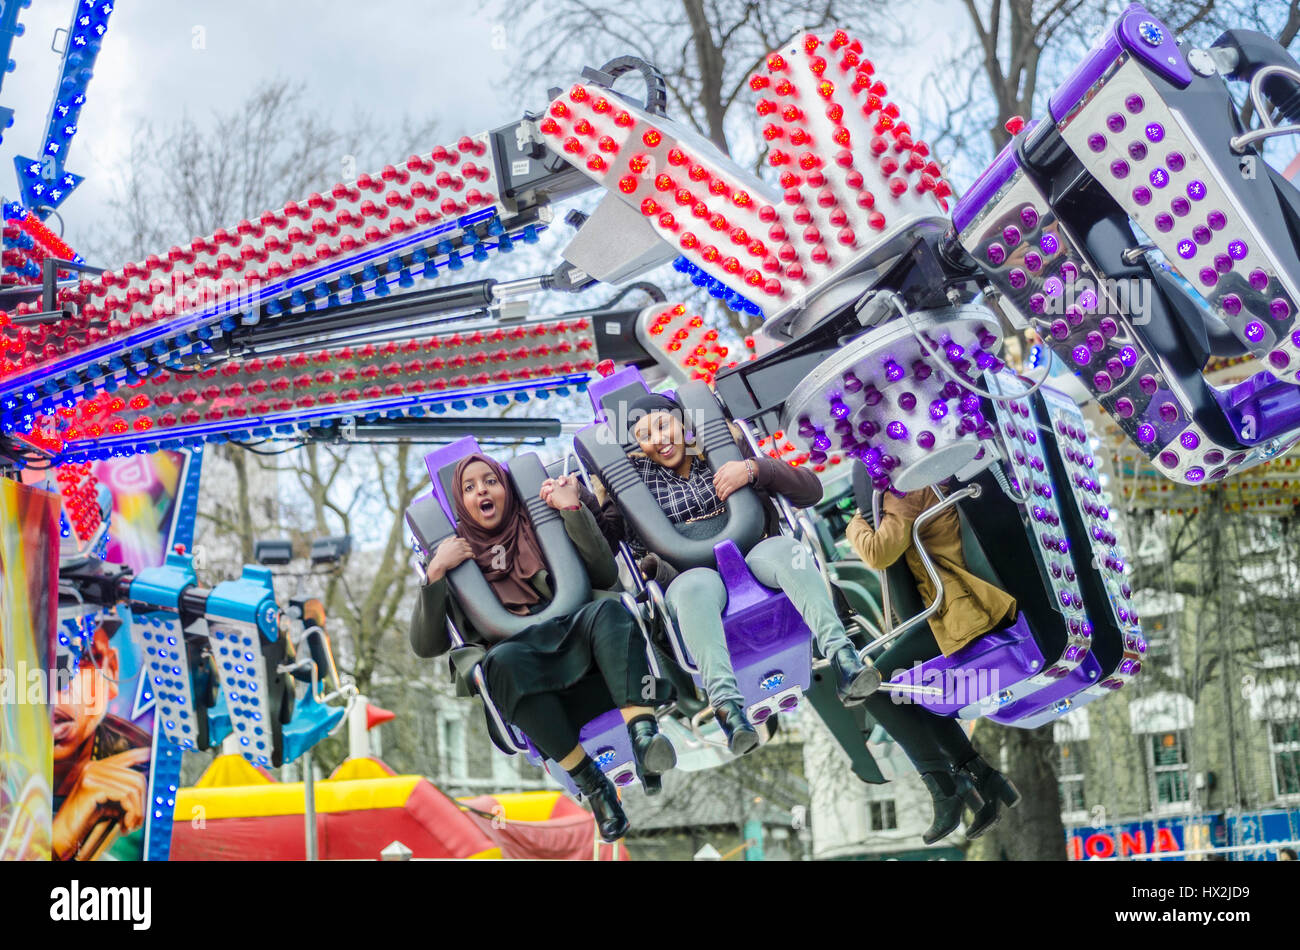 An orbiter ride at a fairground on Shepherds Bush Green in London, England - Stock Image